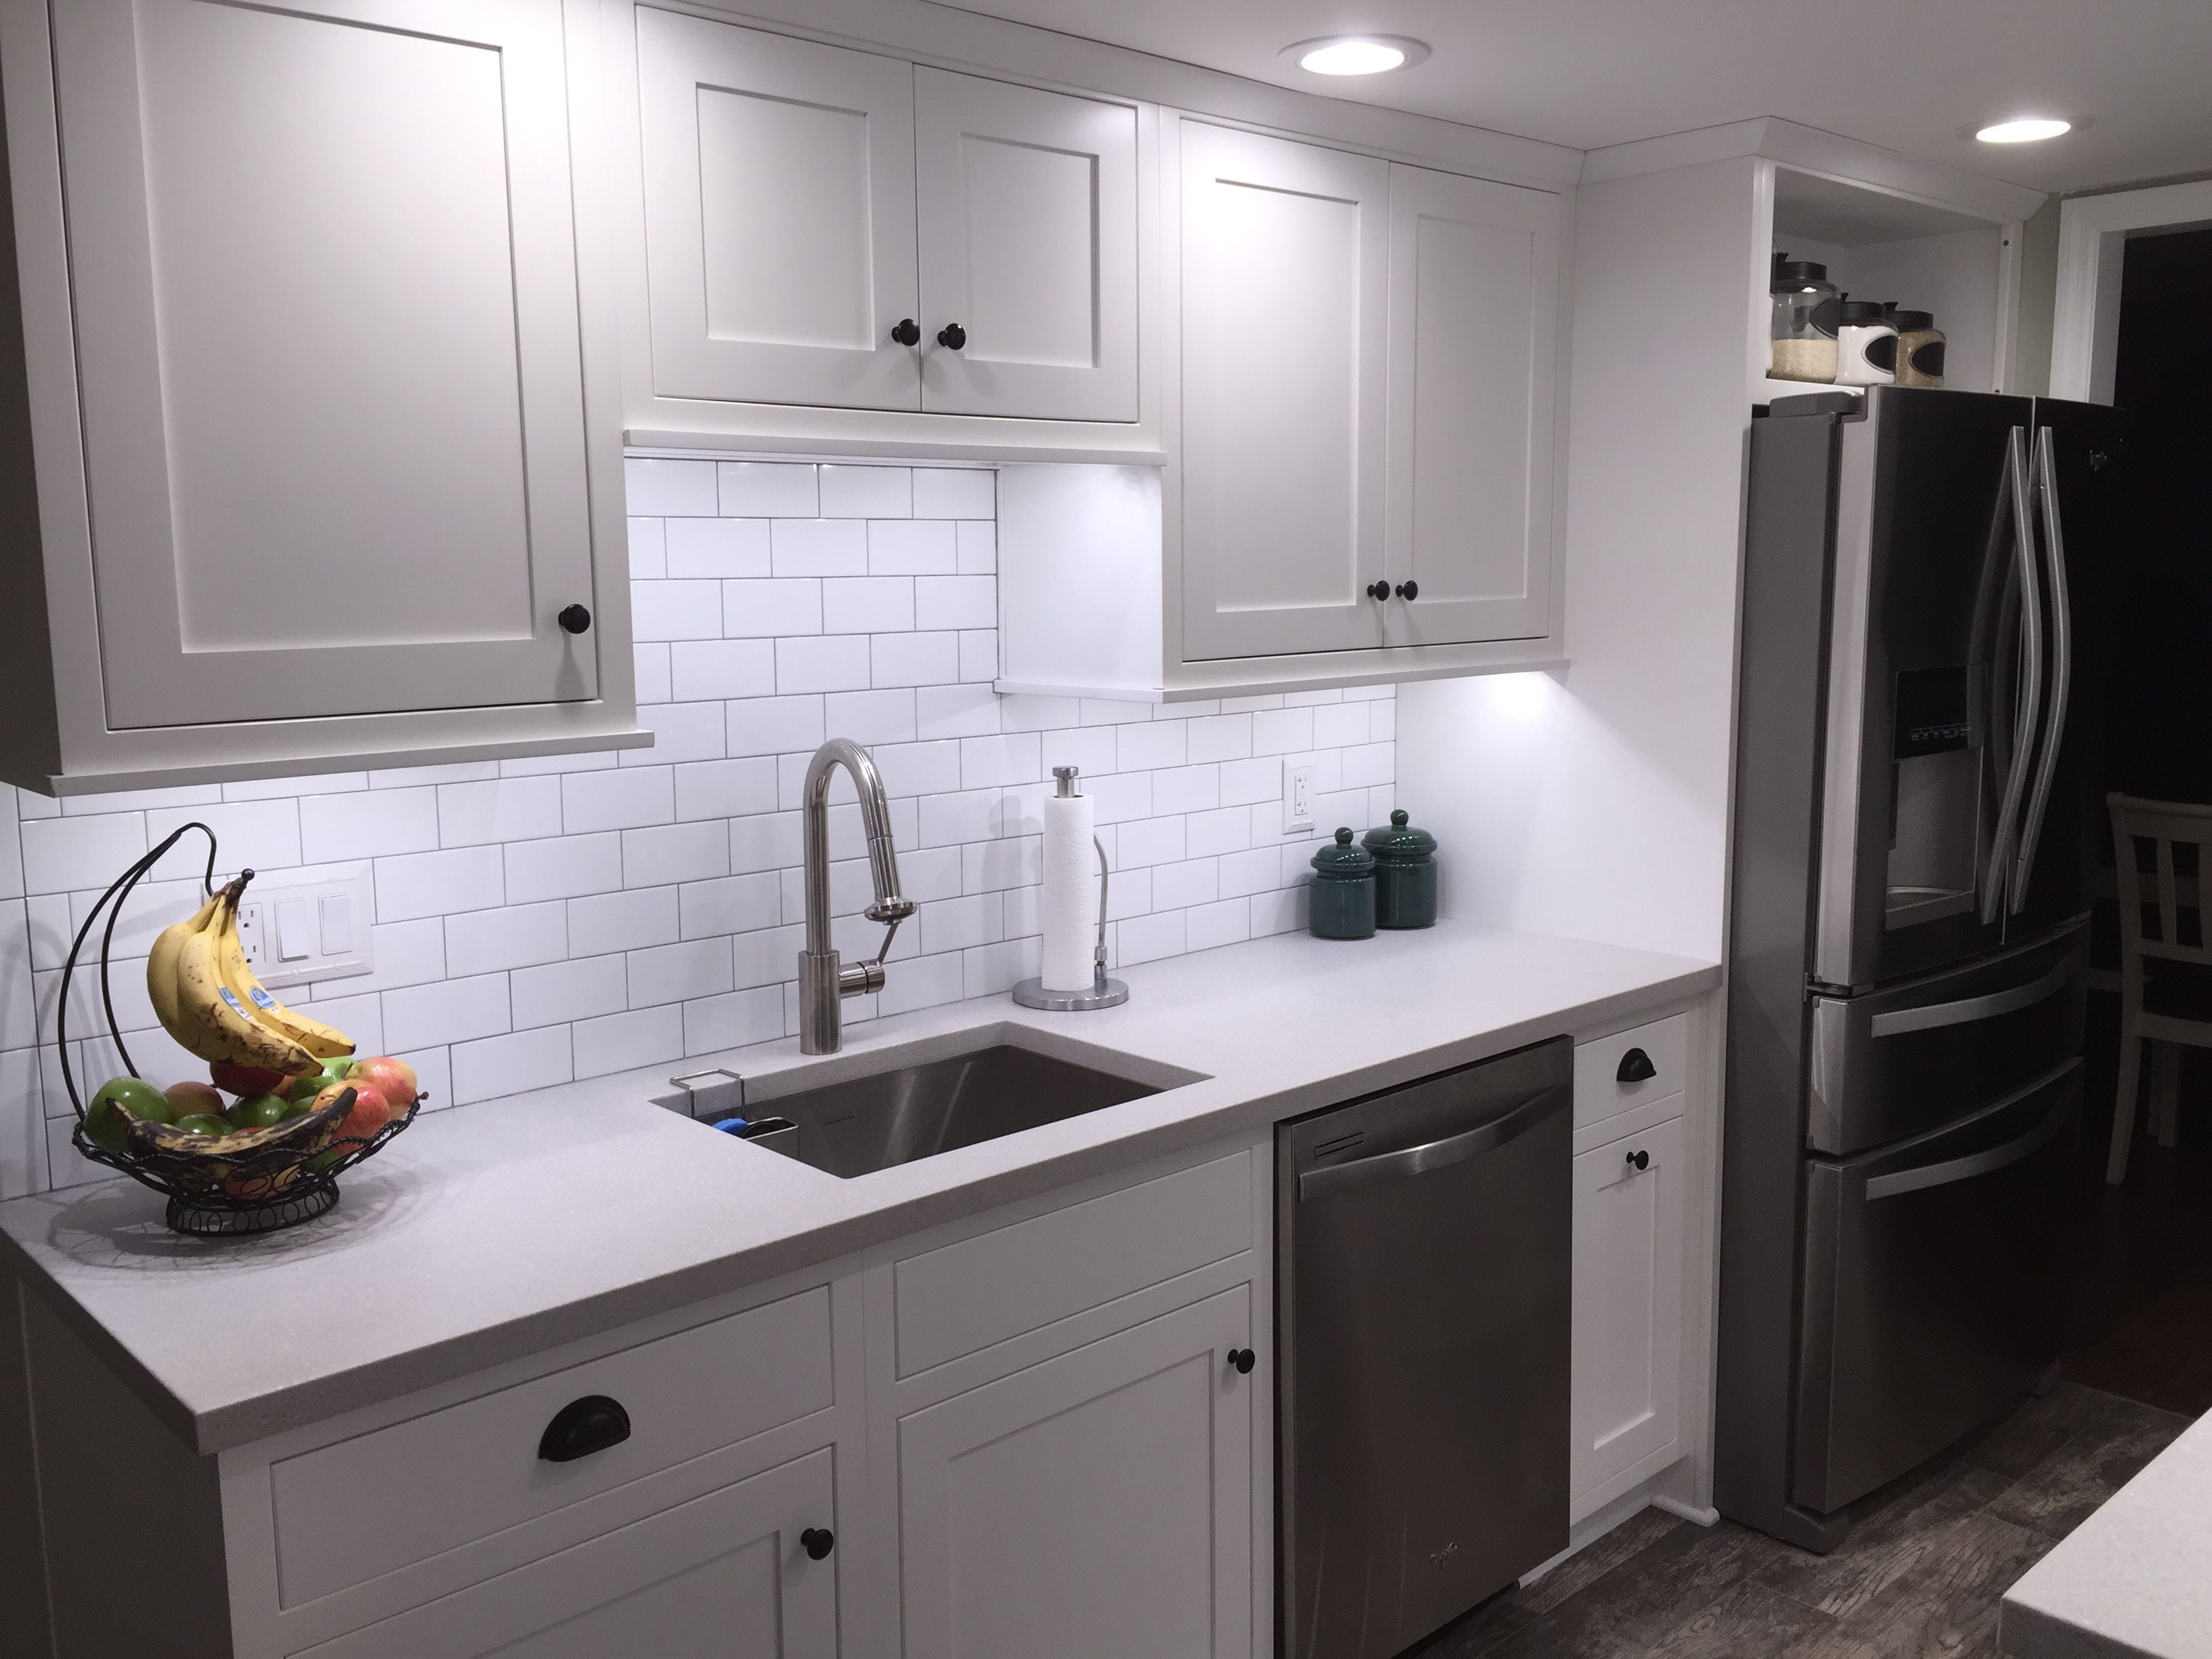 All White Kitchens With White Appliances Galley Kitchen With White Shaker Cabinets Subway Tiles